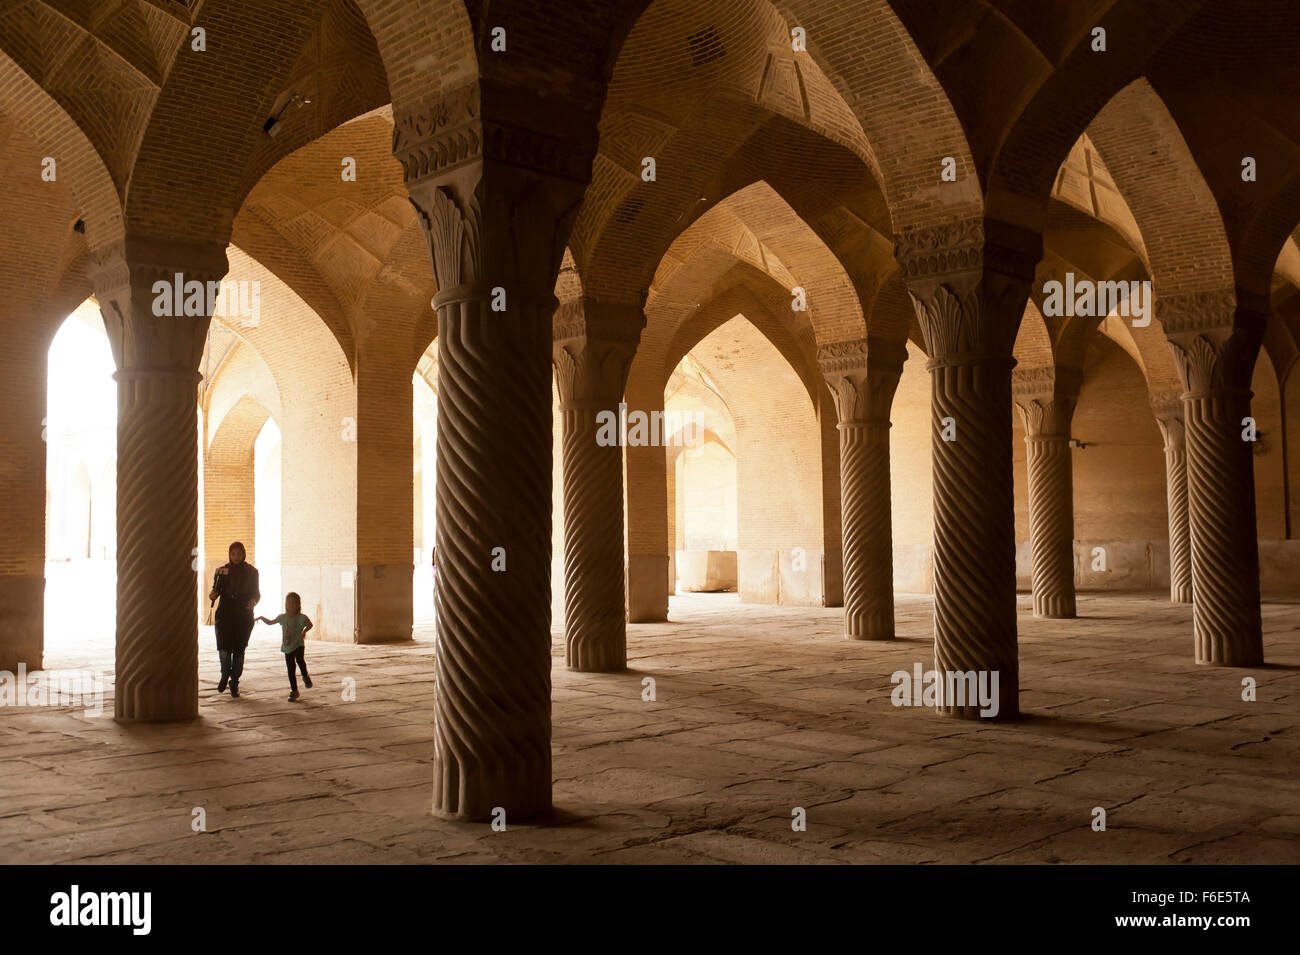 Mother with child in Vakil Mosque prayer hall, Shiraz, Iran - Stock Image